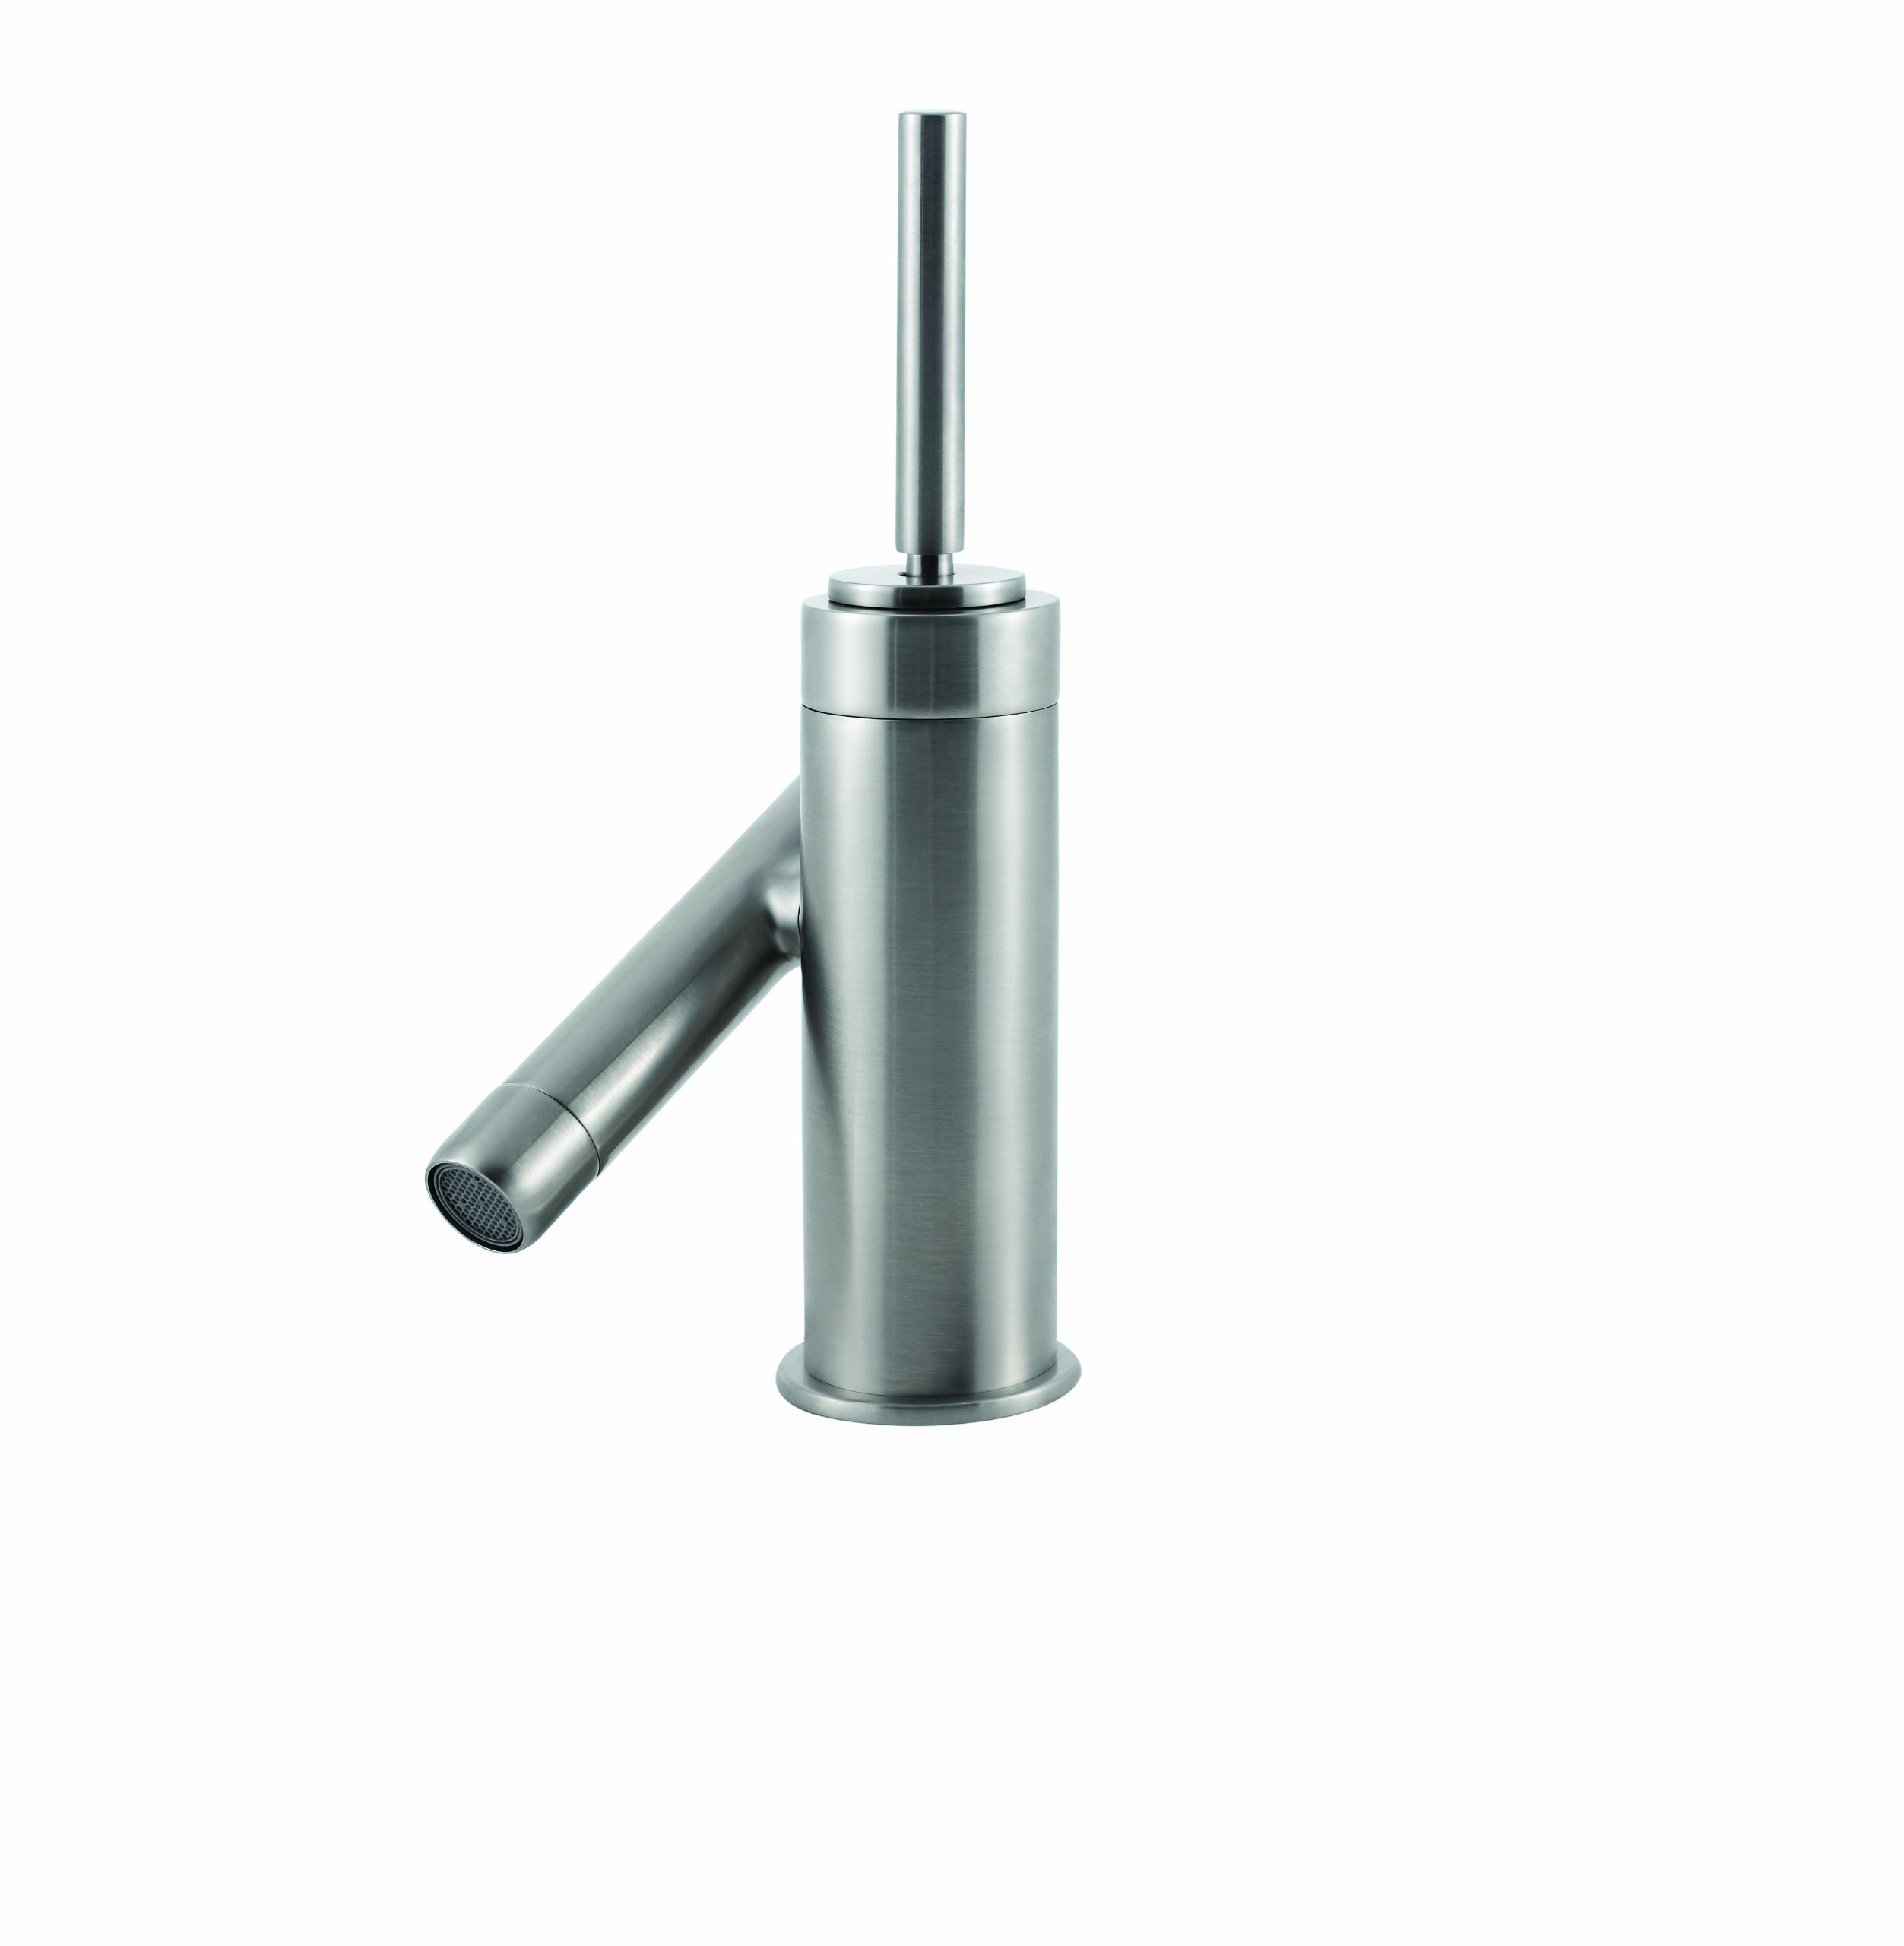 Pfister Contempra Single Control 4'' Centerset Bathroom Faucet, Brushed Nickel by Pfister